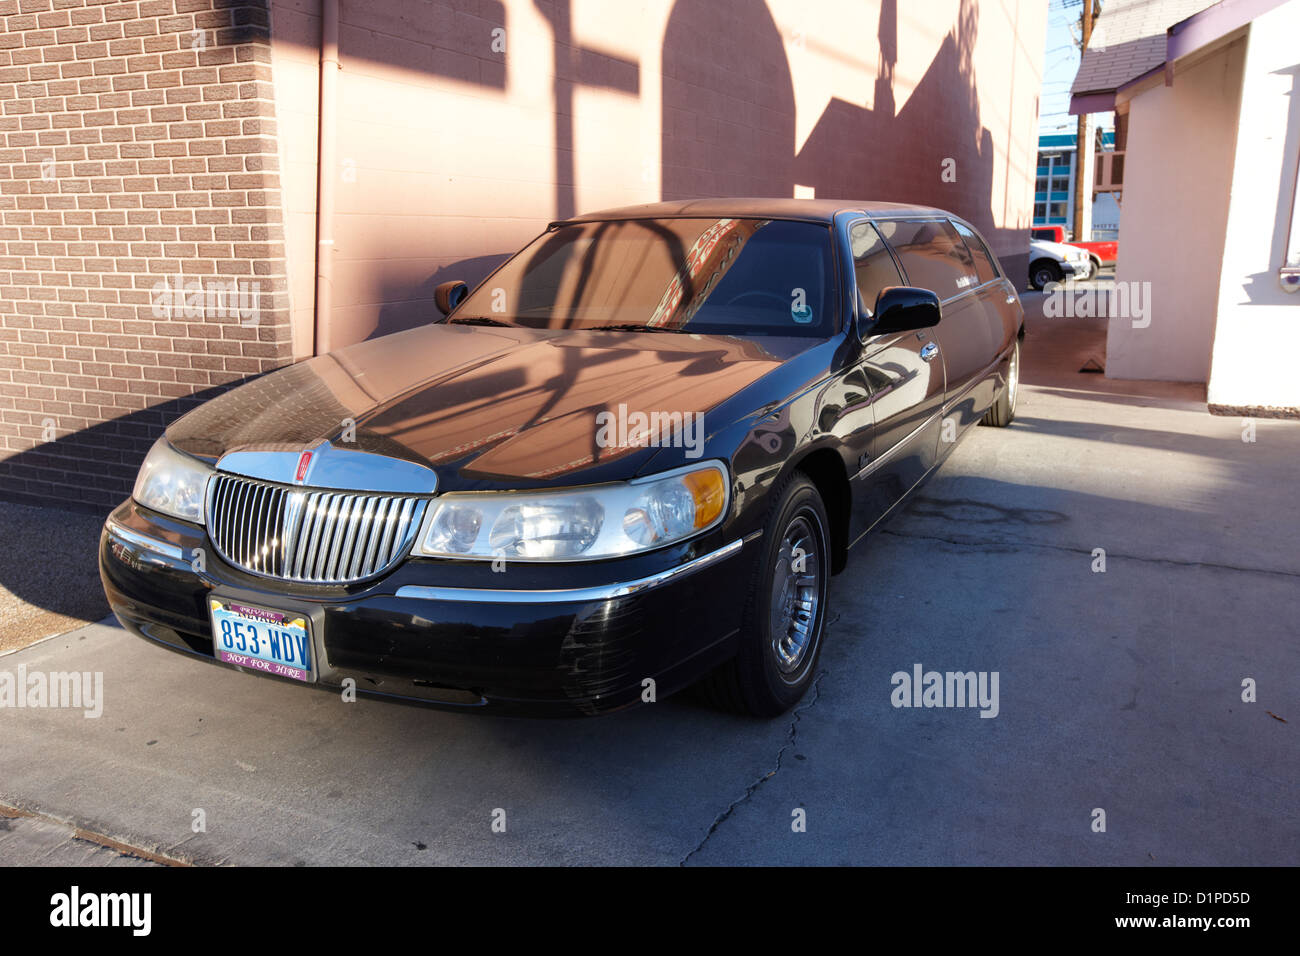 private limousine parked in Las Vegas Nevada USA - Stock Image